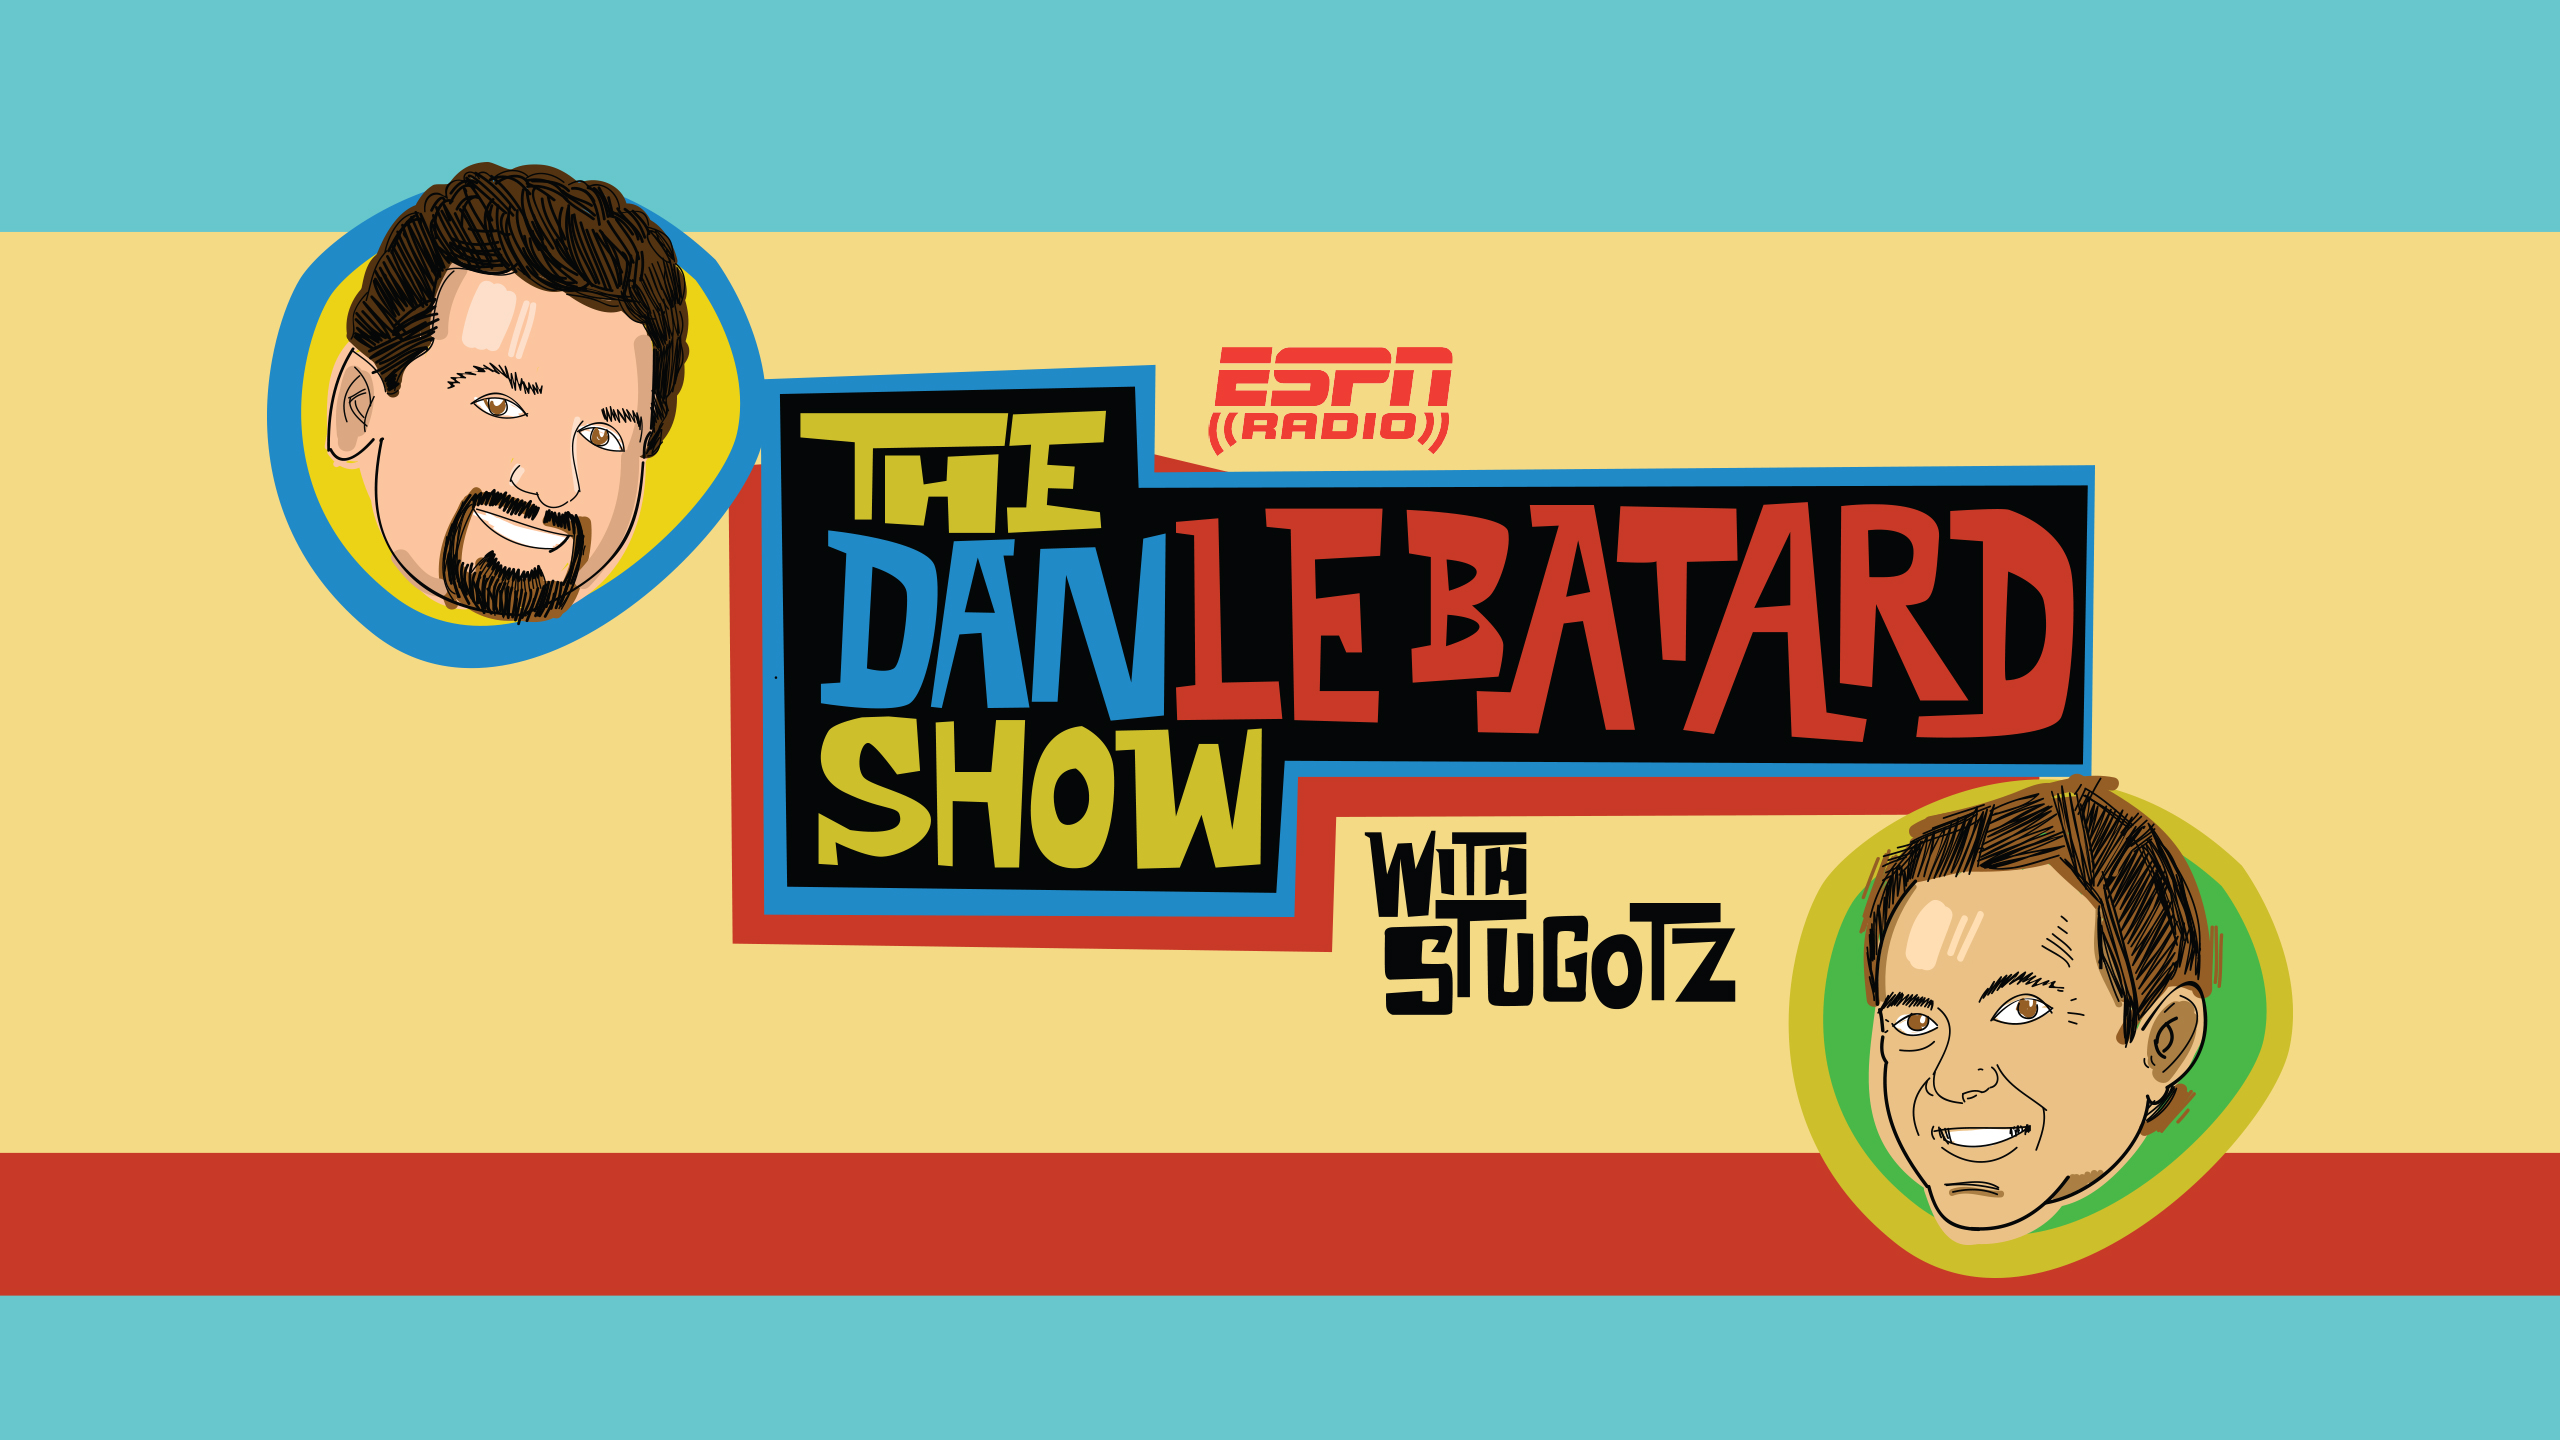 Fri, 2/15 - The Dan Le Batard Show with Stugotz Presented by Progressive